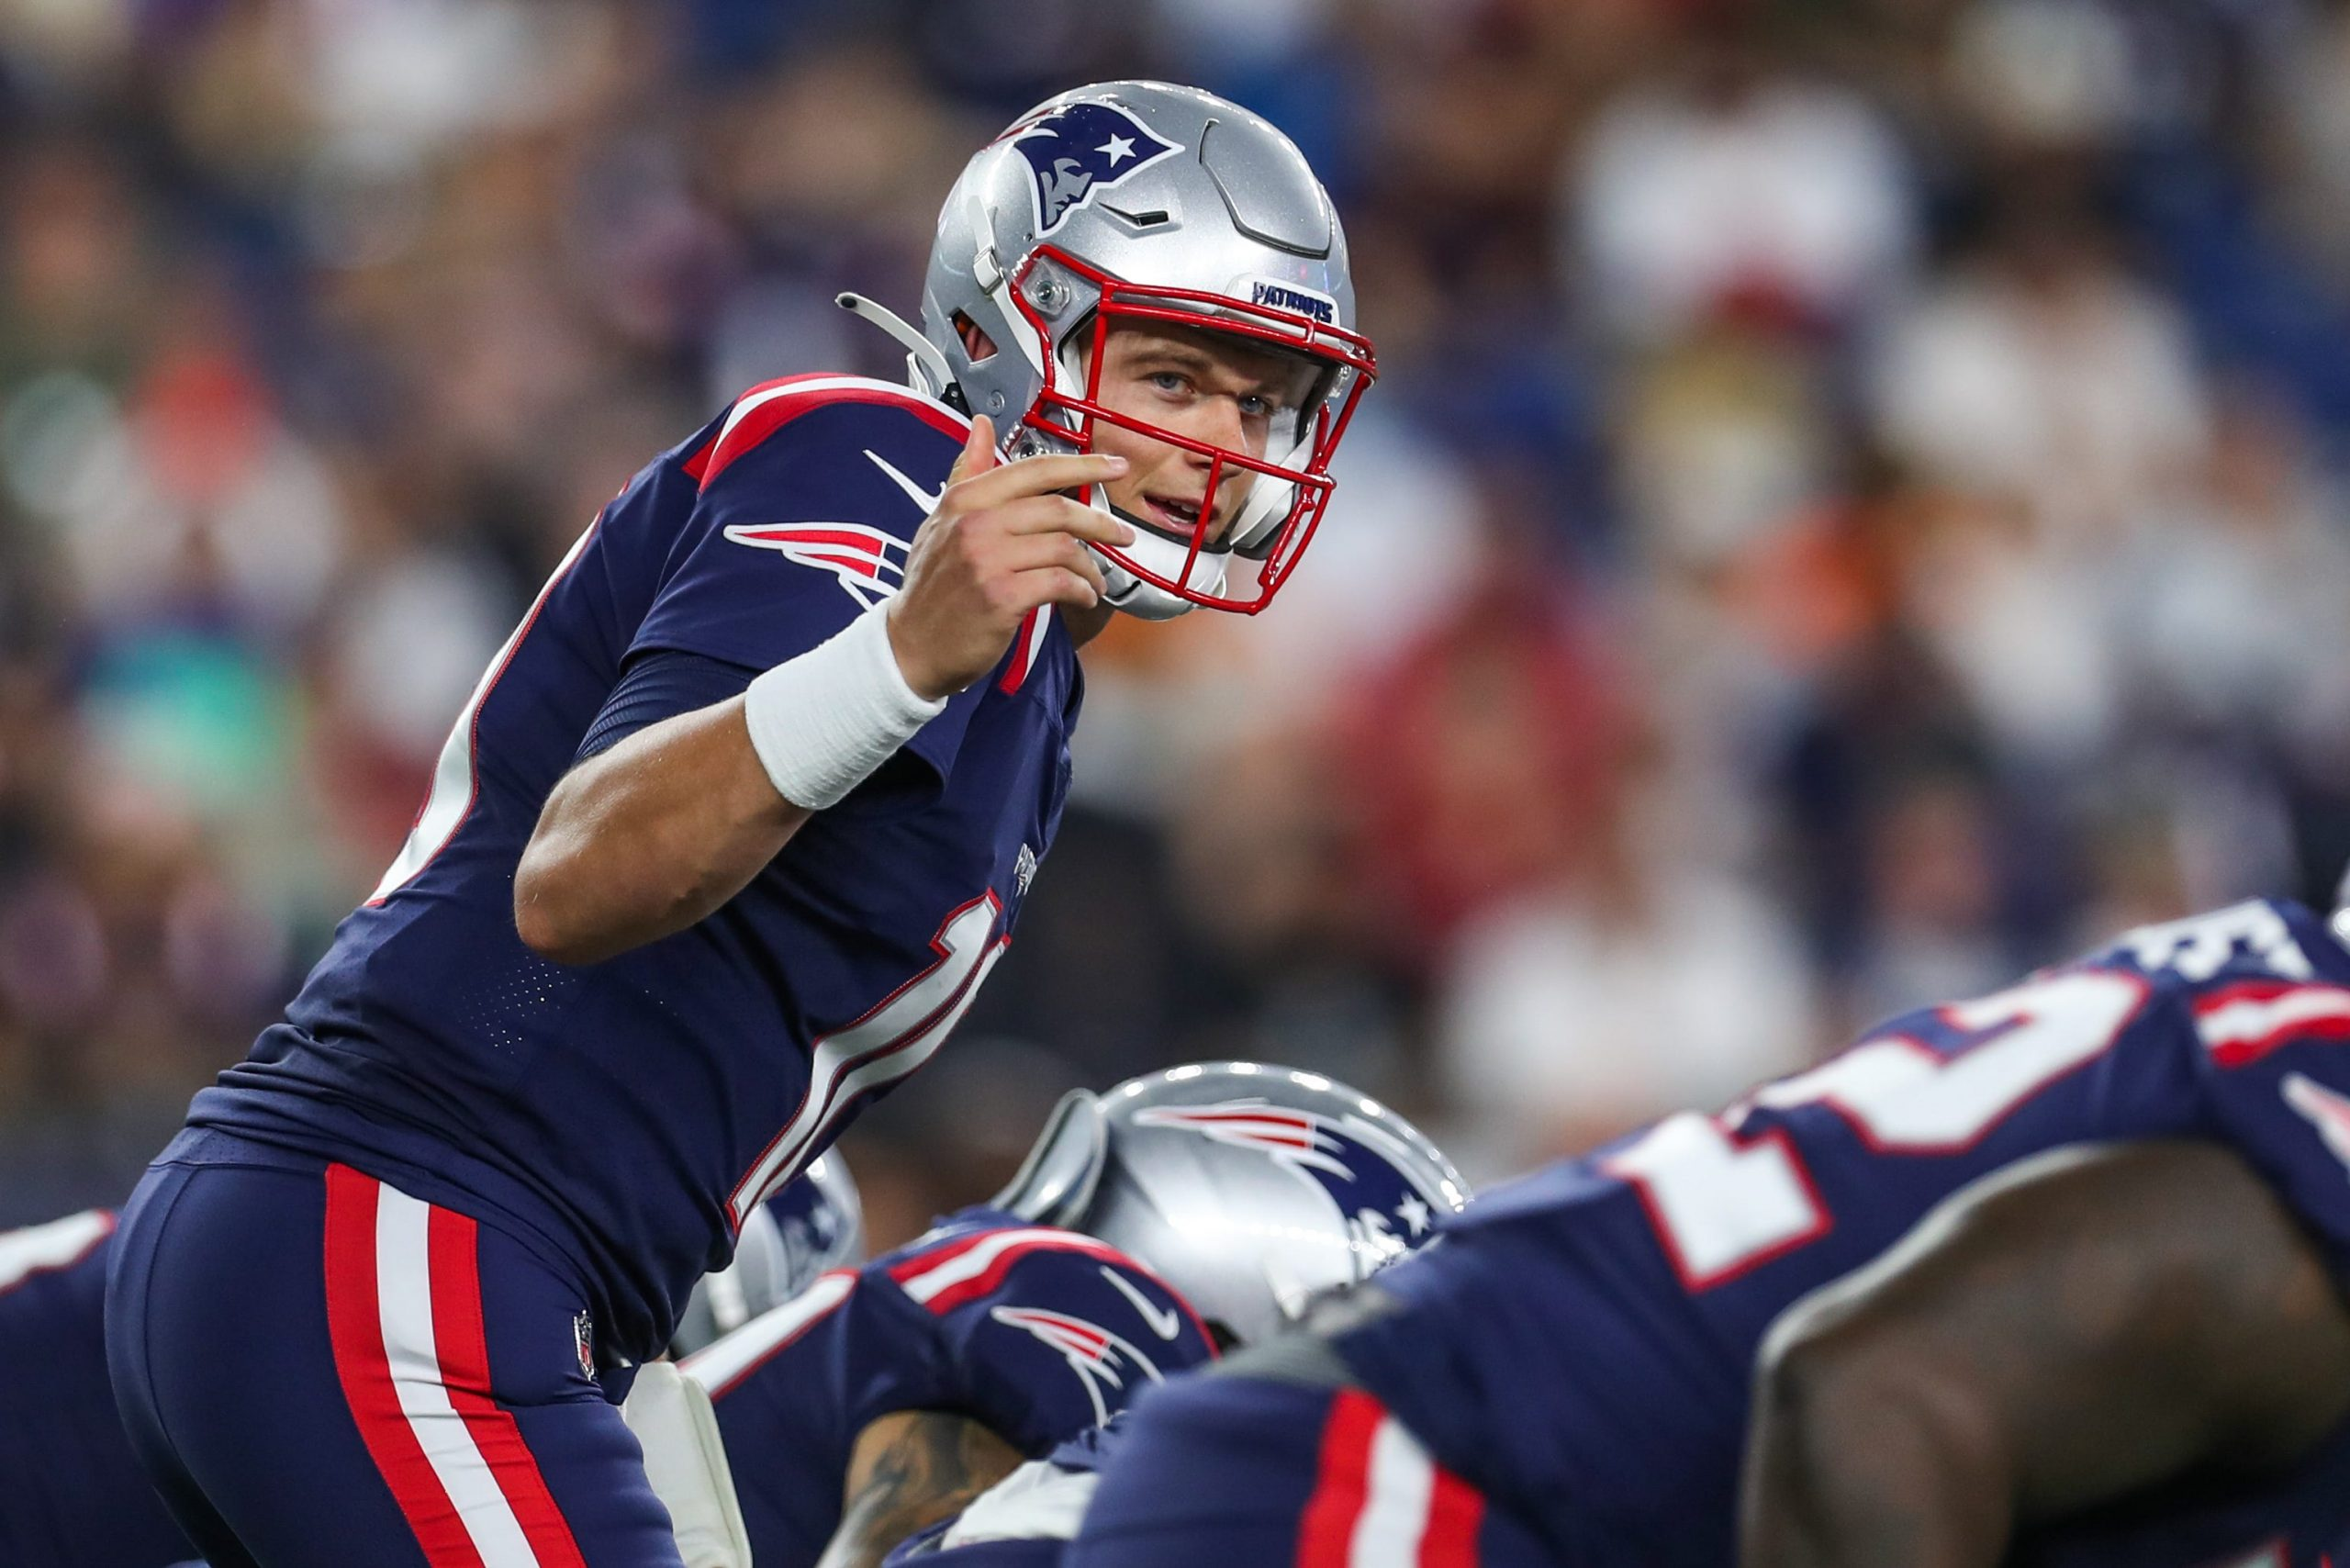 Patriots Vs Dolphins: Players To Watch